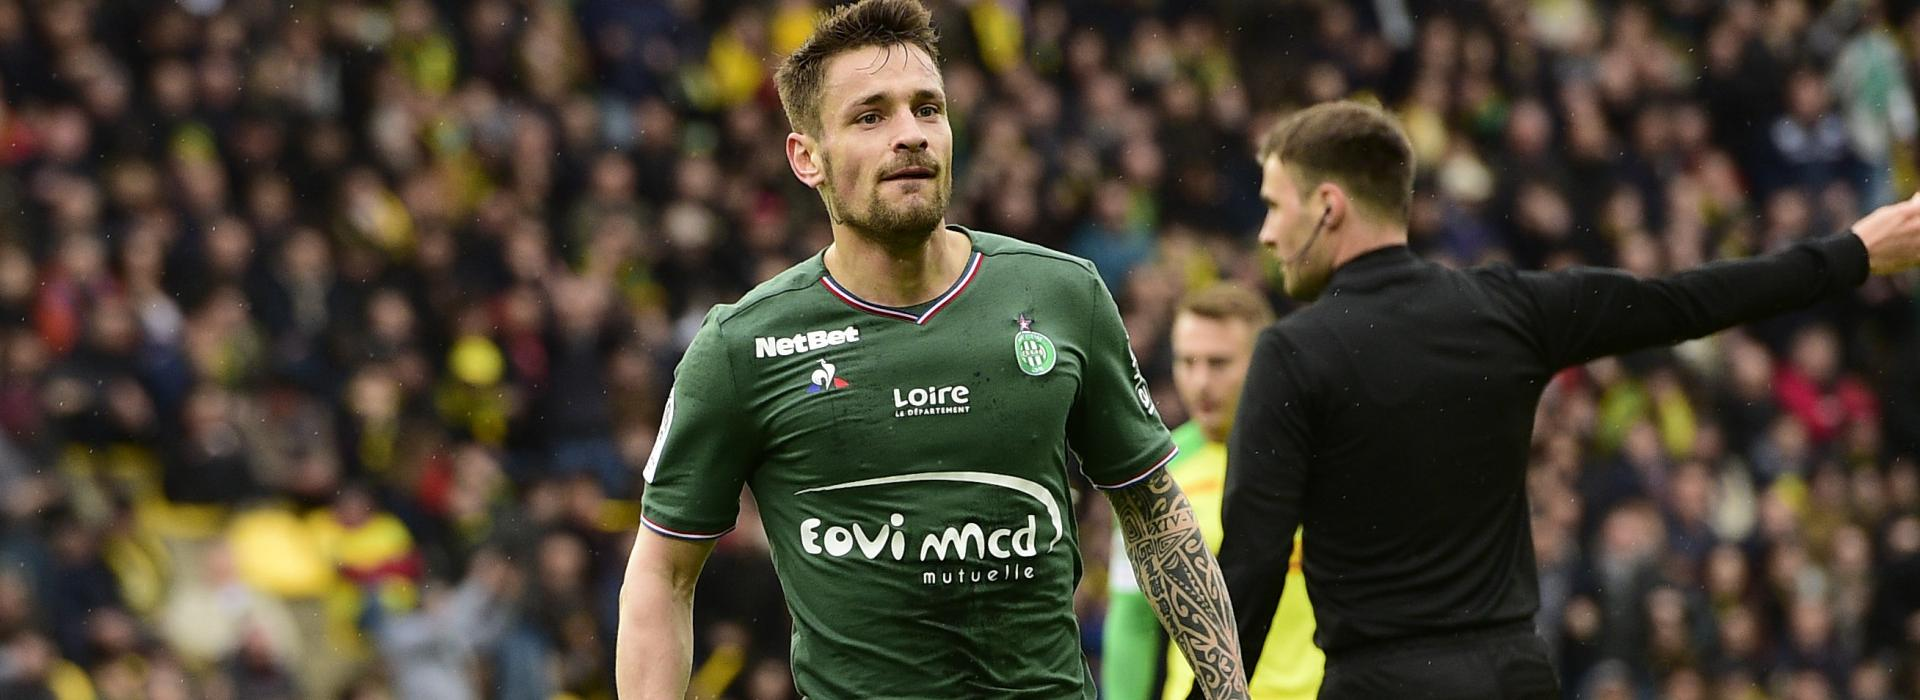 Flash : Mathieu Debuchy jusqu'en 2021 !